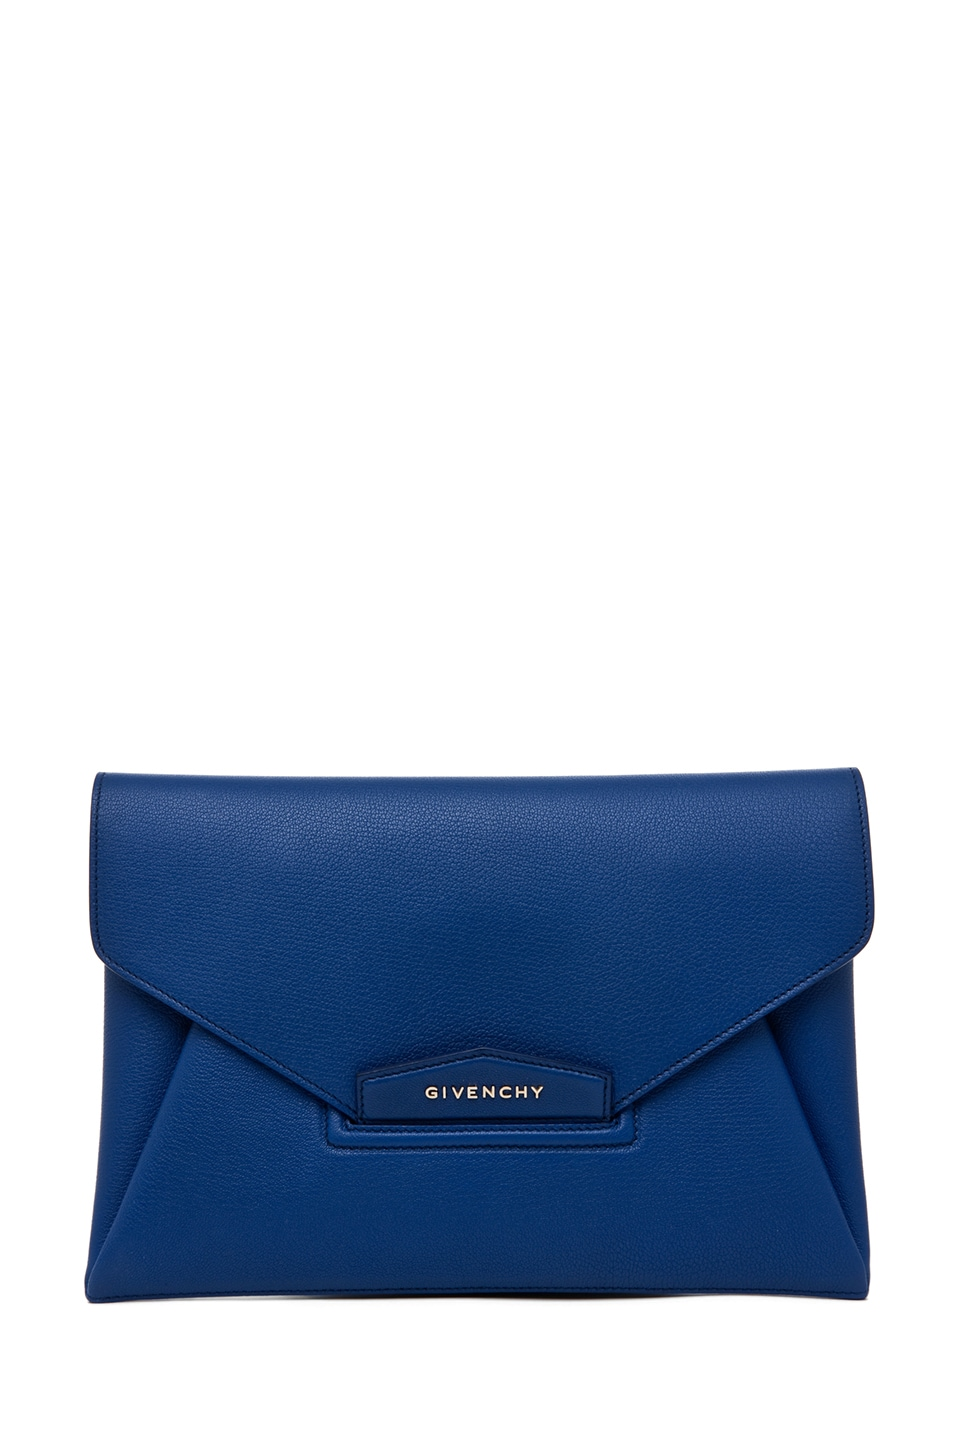 Image 1 of GIVENCHY Antigona Envelope Clutch in Moroccan Blue